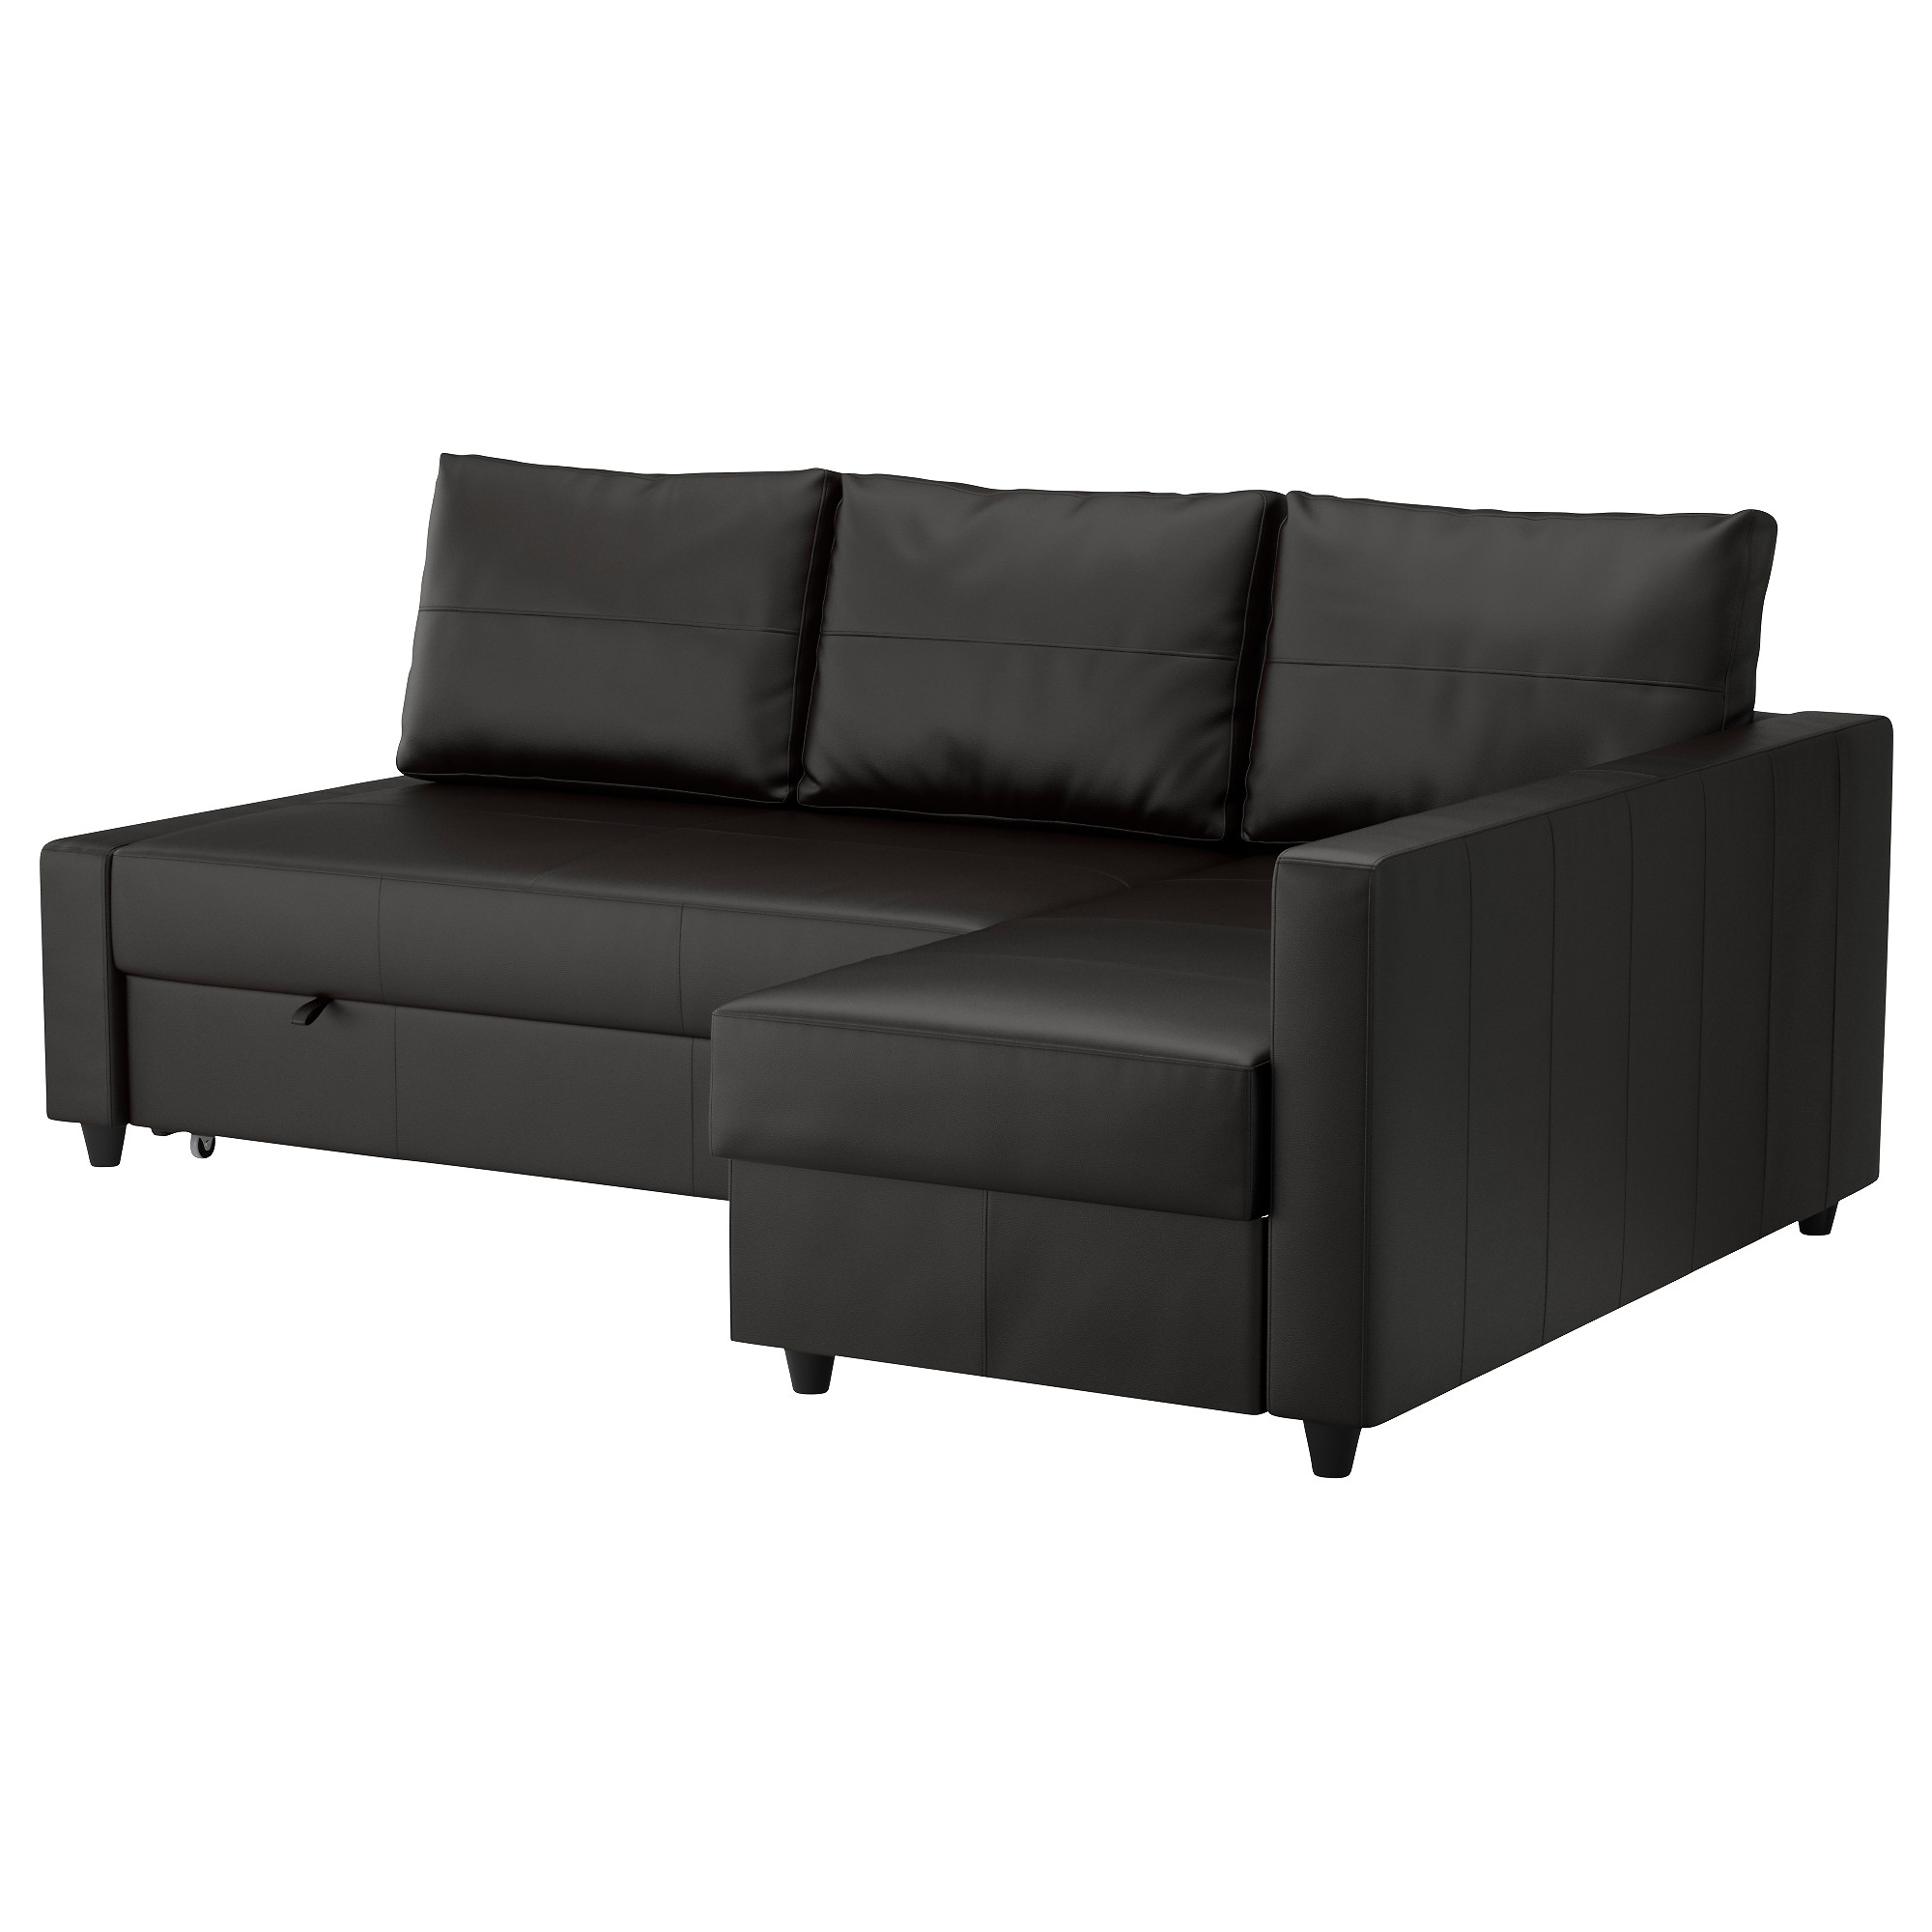 FRIHETEN Corner Sofa-bed With Storage - Skiftebo Dark Orange - IKEA